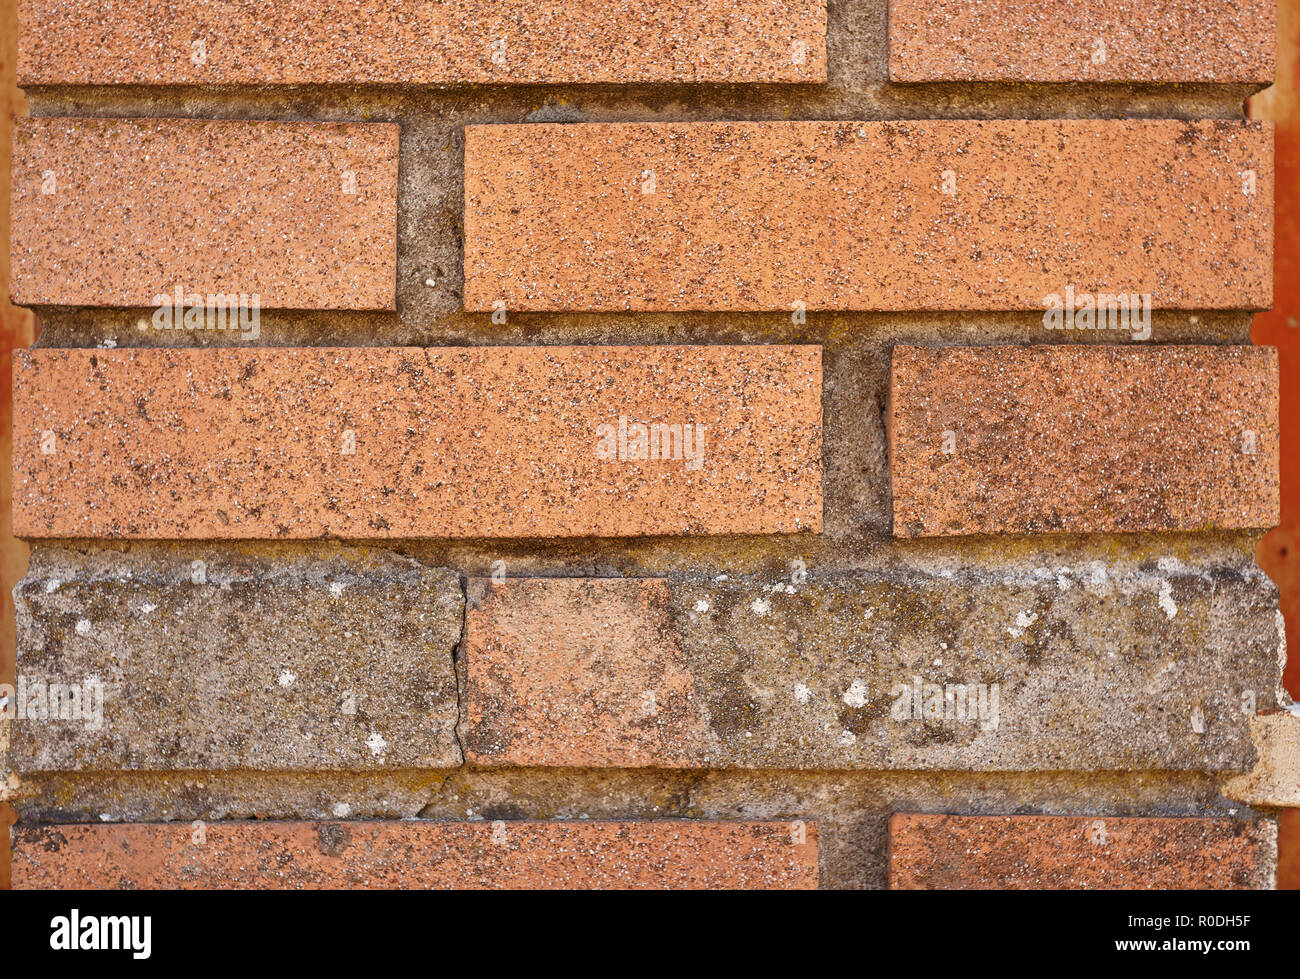 Texture of bricks in a wall usable as a background or graphic resource. - Stock Image